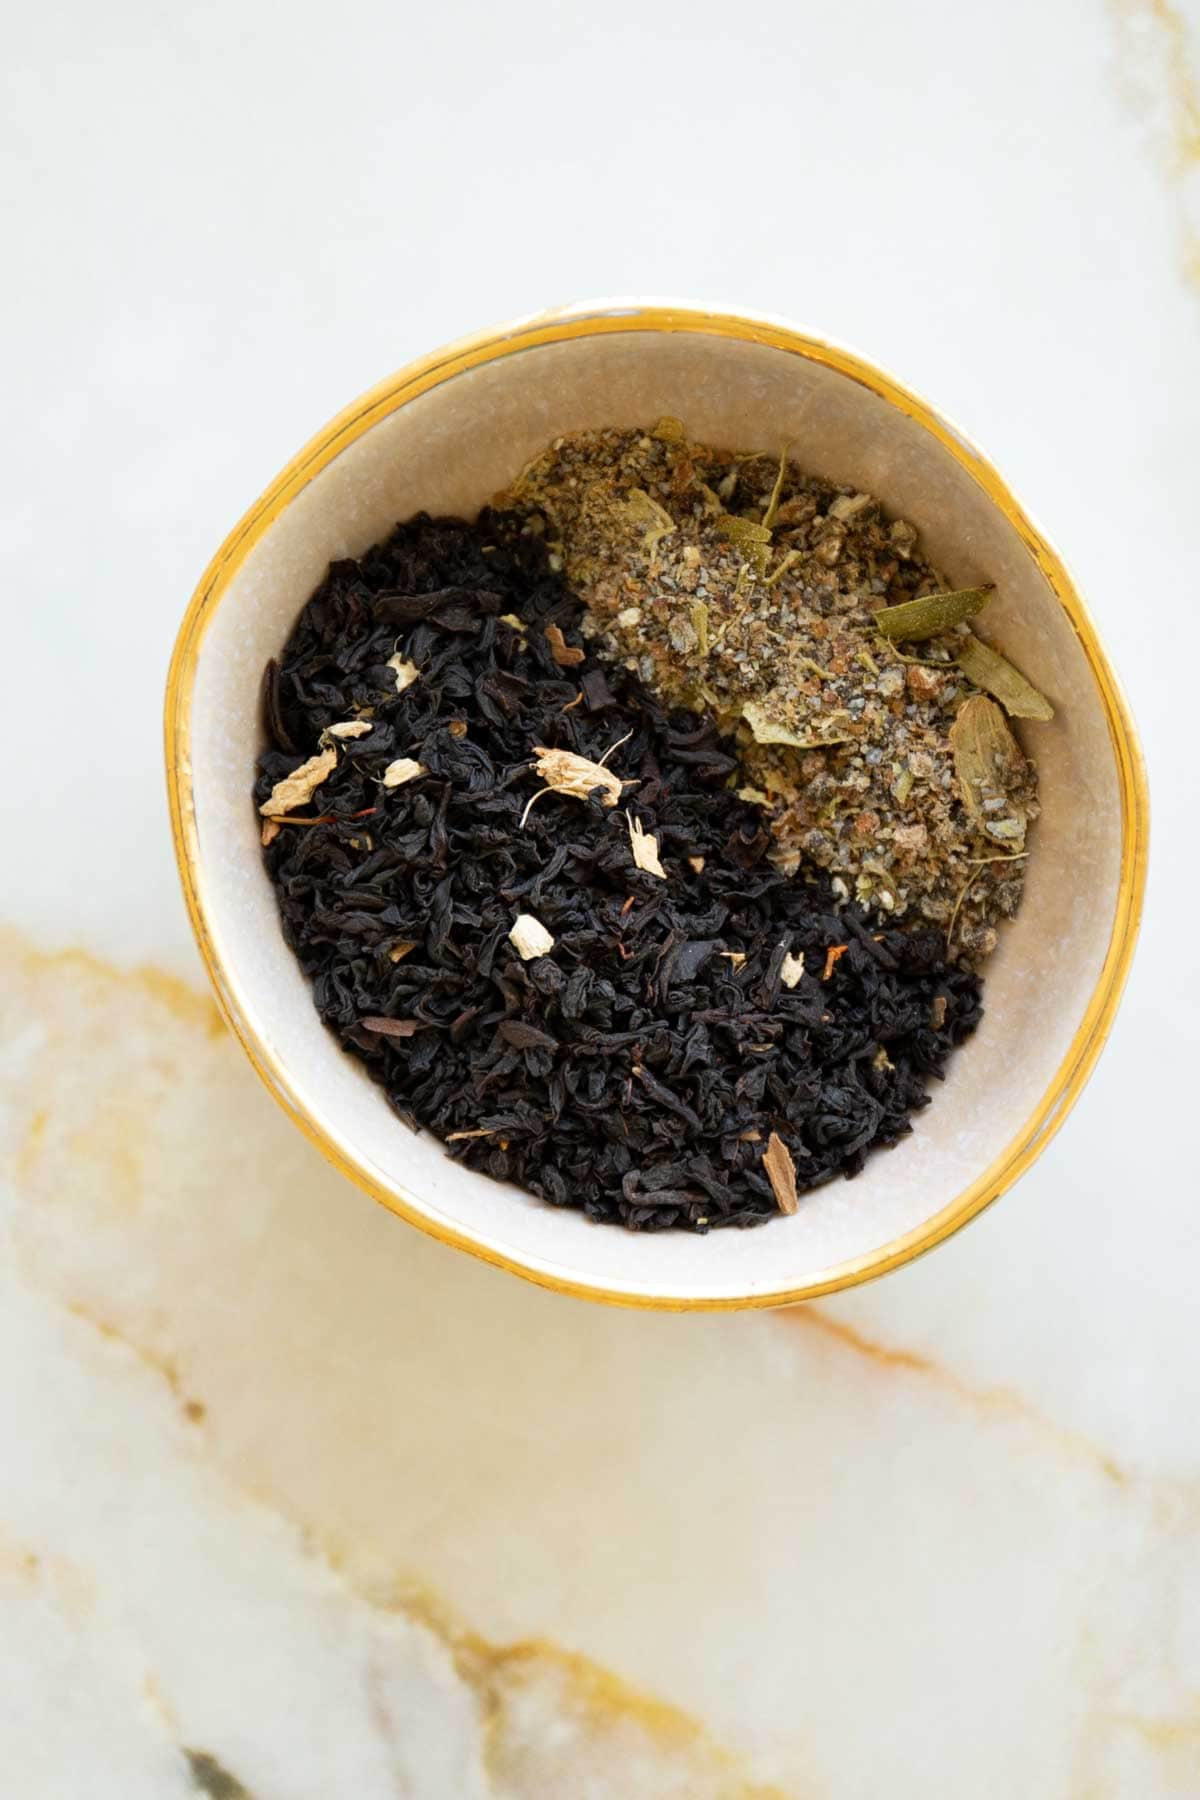 black tea with crushed cardamom in a bowl